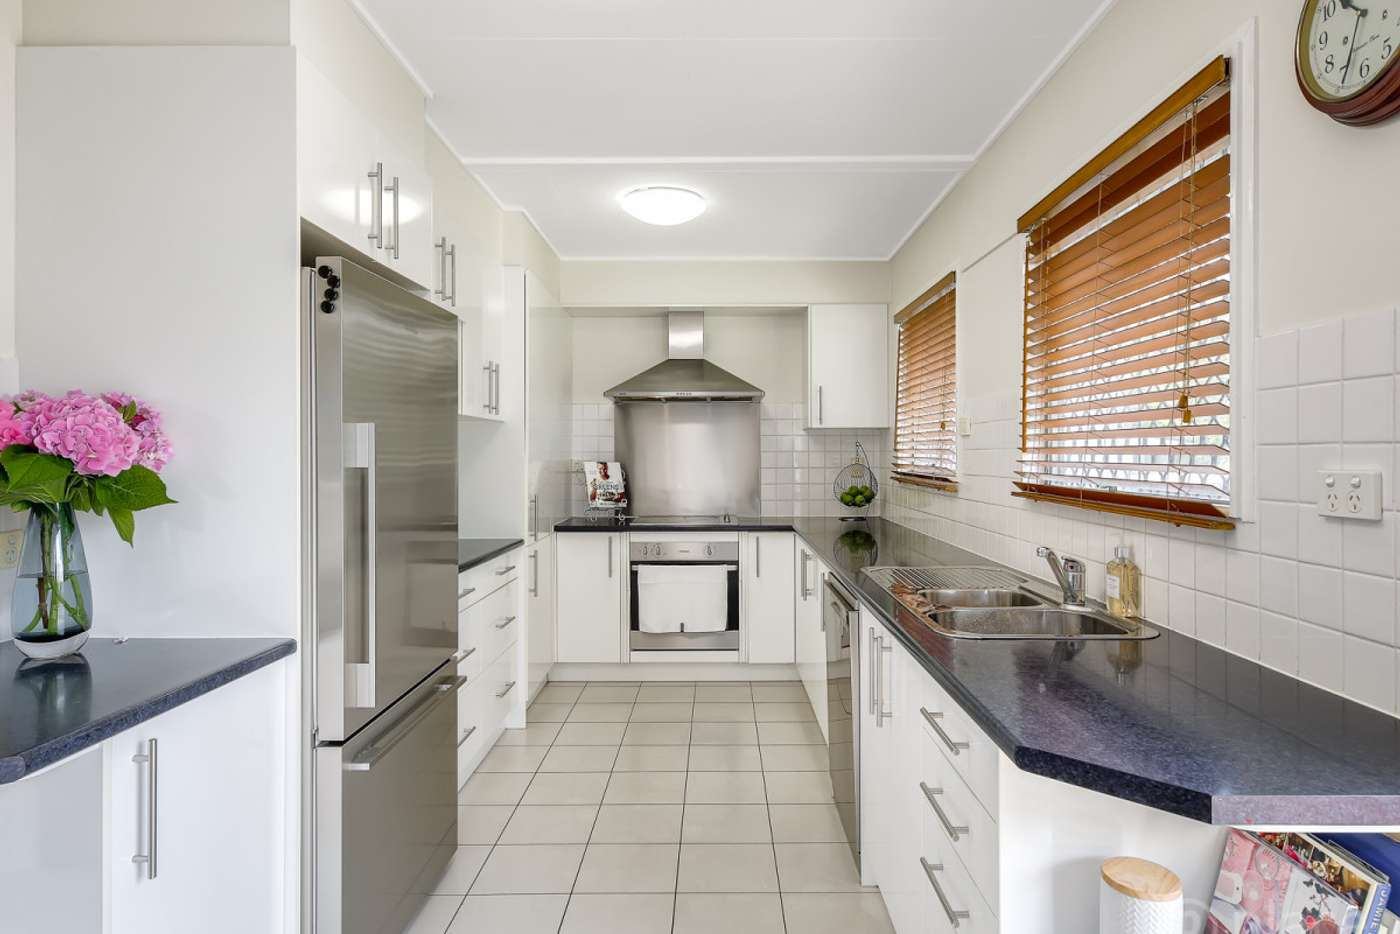 Main view of Homely house listing, 58 Dobbs Street, Holland Park West QLD 4121